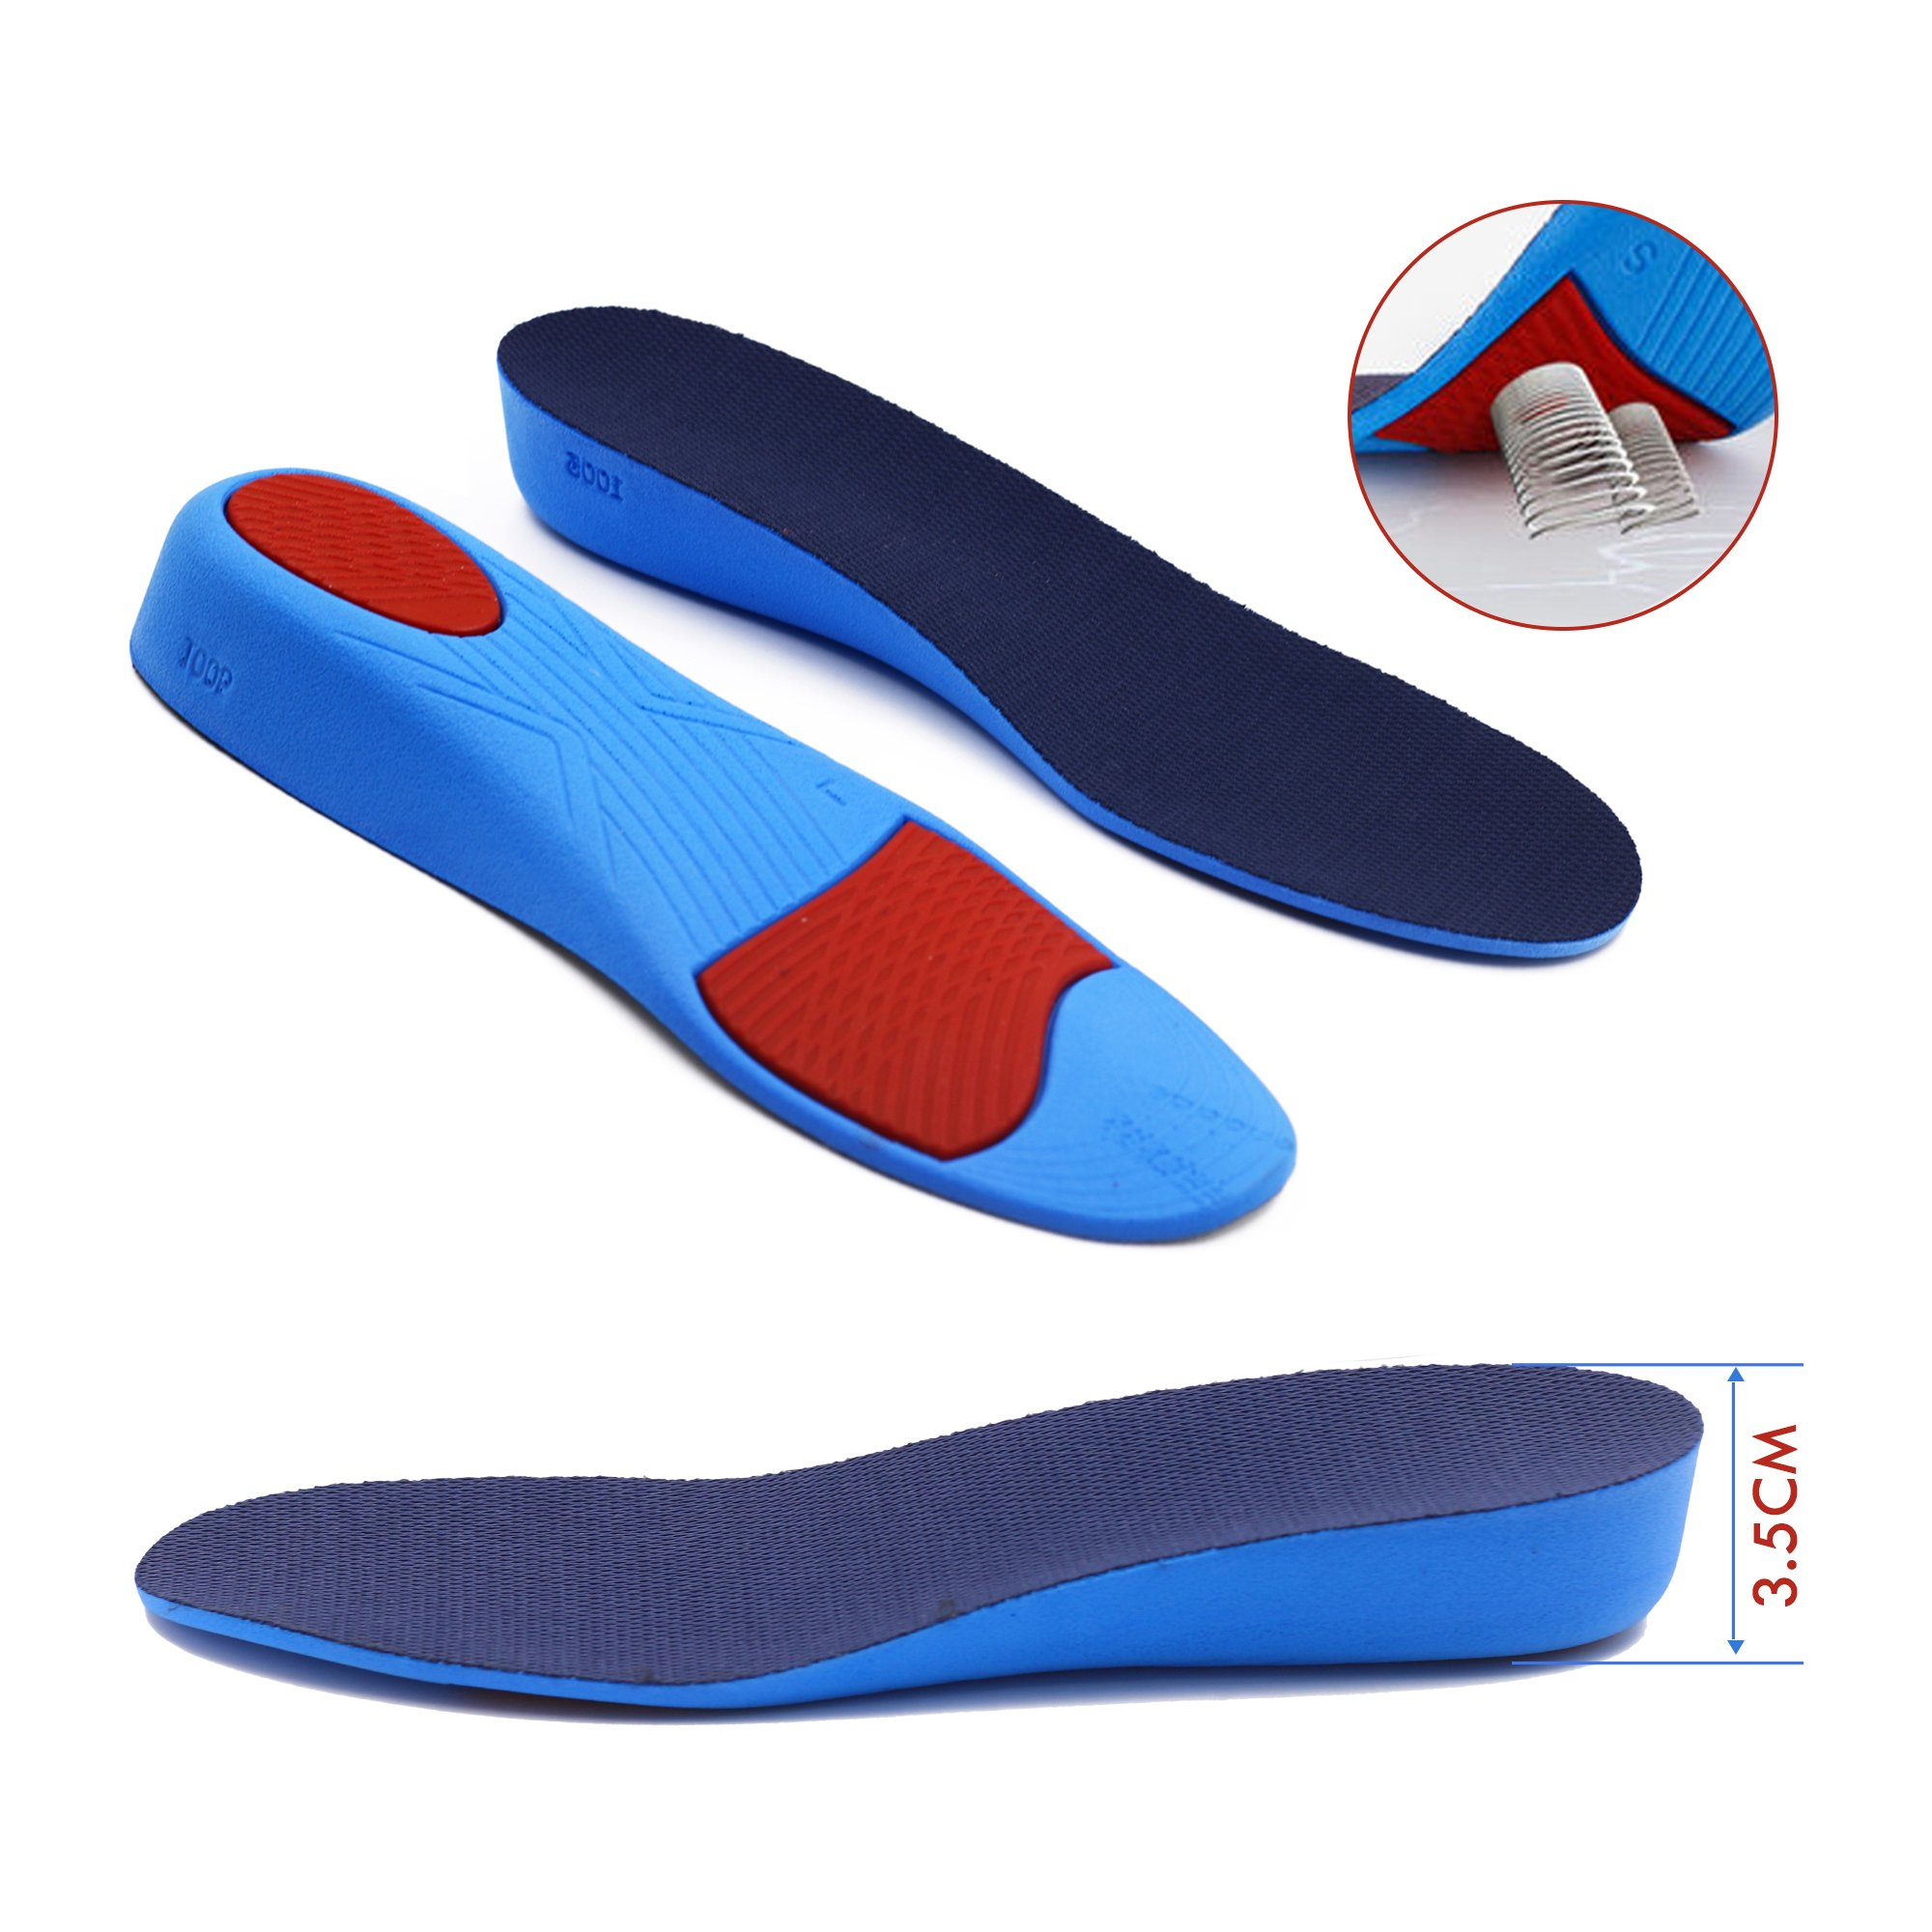 Shoe Lifts For Men 3.5cm (1.37'') Heel Lift Taller Inserts Instant Adjustable Raise the Height With Comfortable Breathable and Reduces Foot Pressure by ERGOfoot